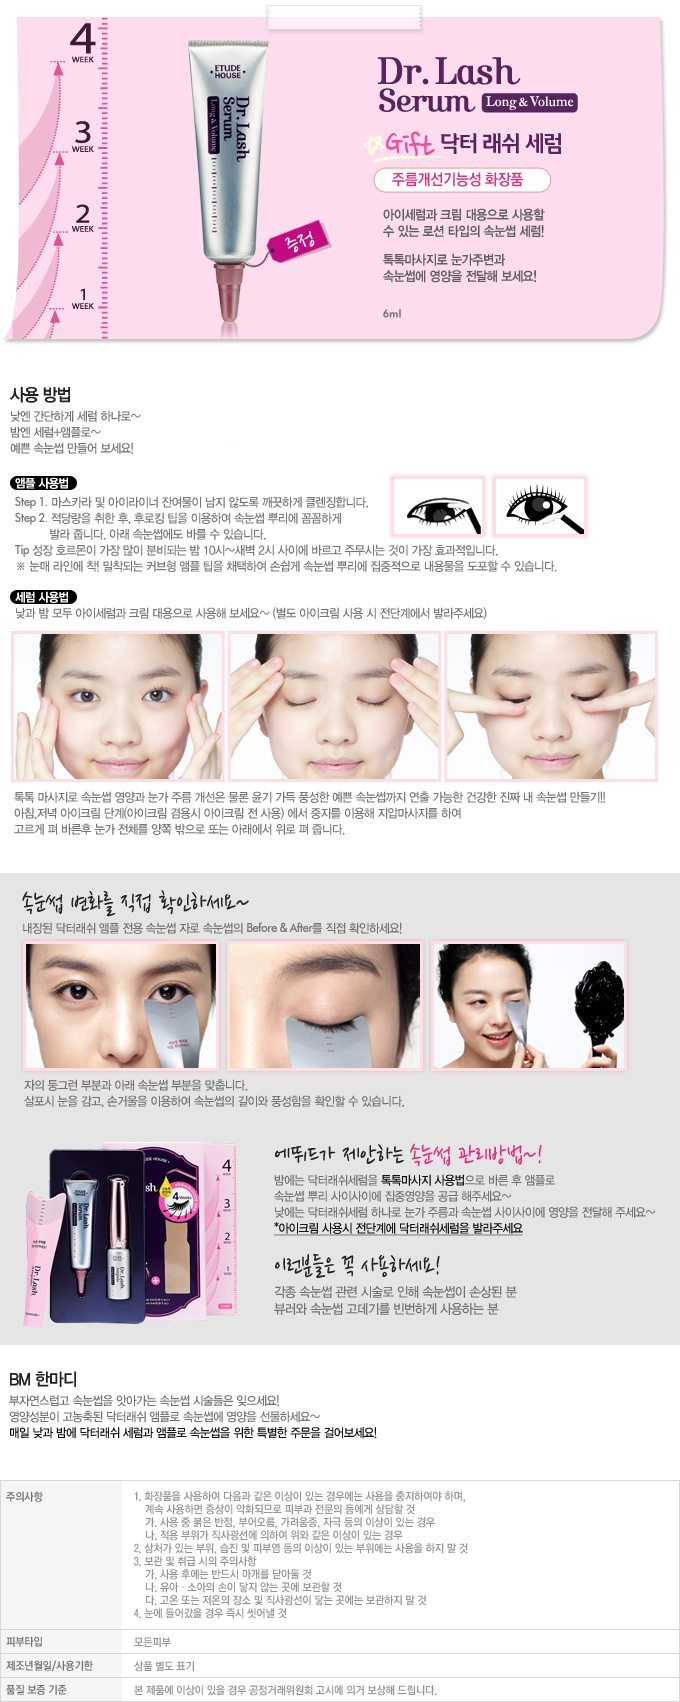 Etude House Dr. Lash Ampule Long and Volume 6ml + 6 ml malaysia cleansing makeup cosmetic skincare online shop 123